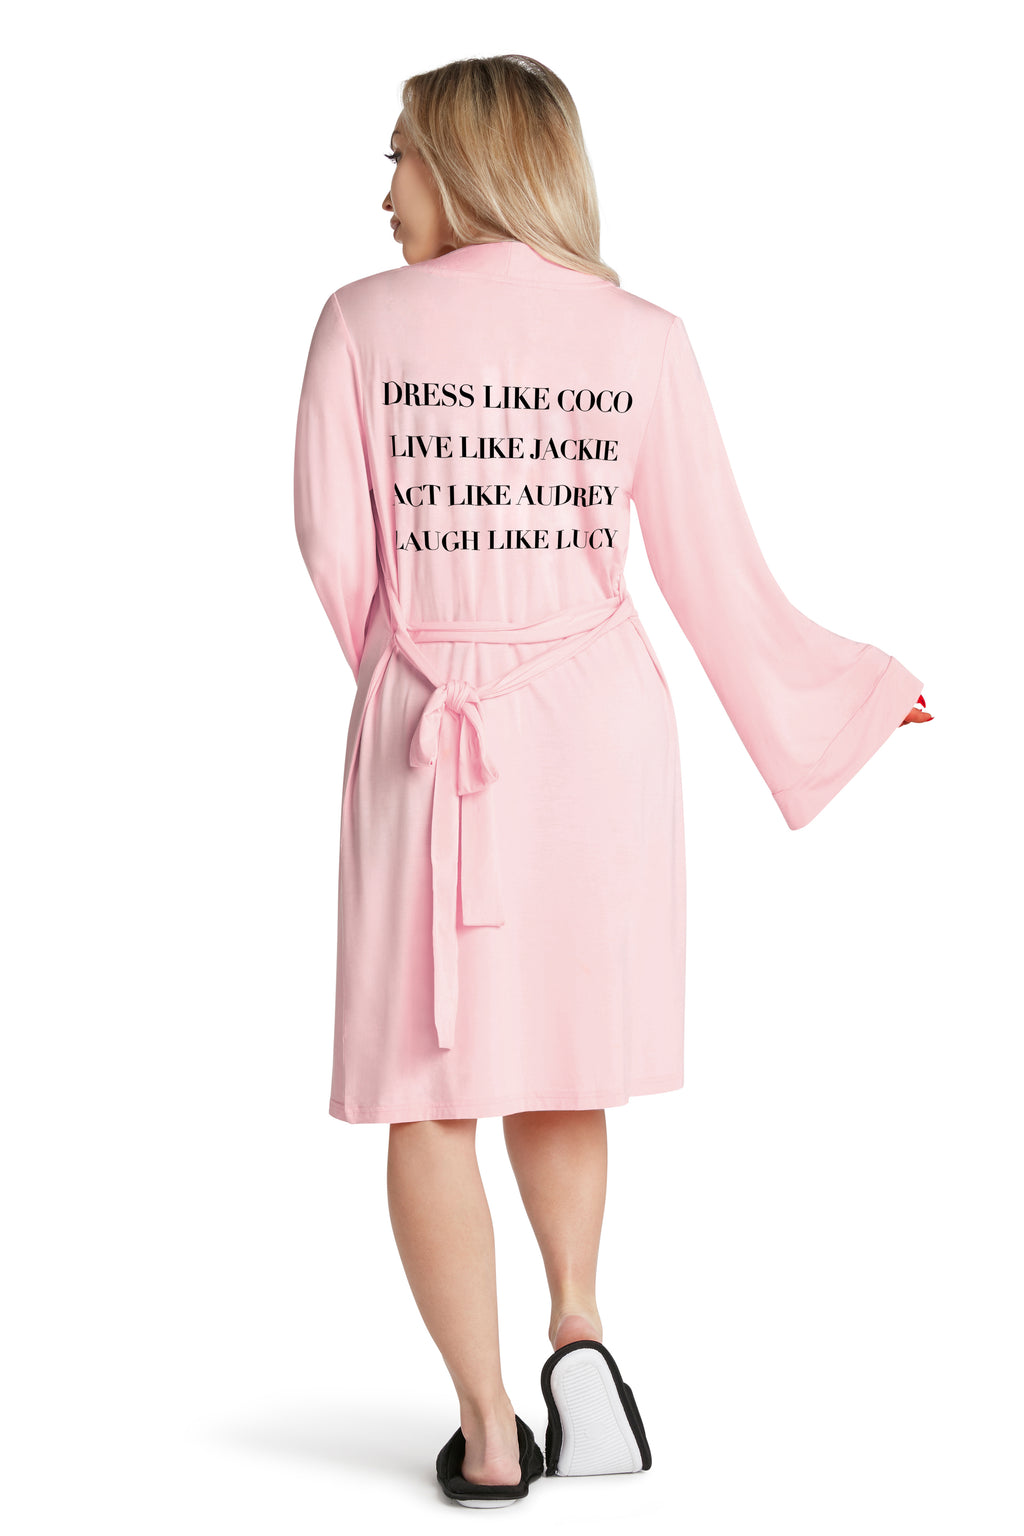 LIGHTWEIGHT ROBE - Dress Like Coco - Pink